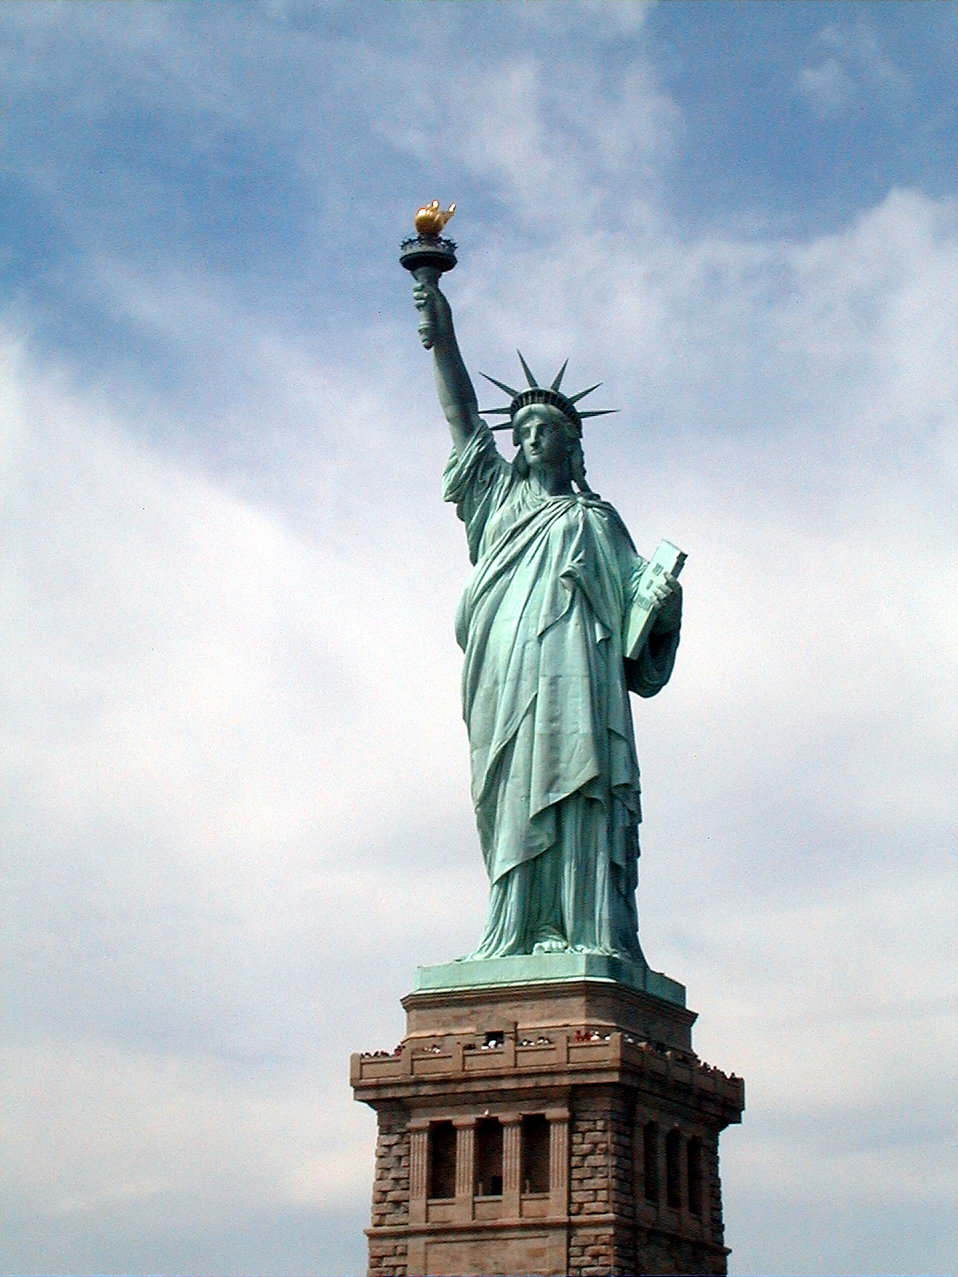 The Statue of Liberty monument.